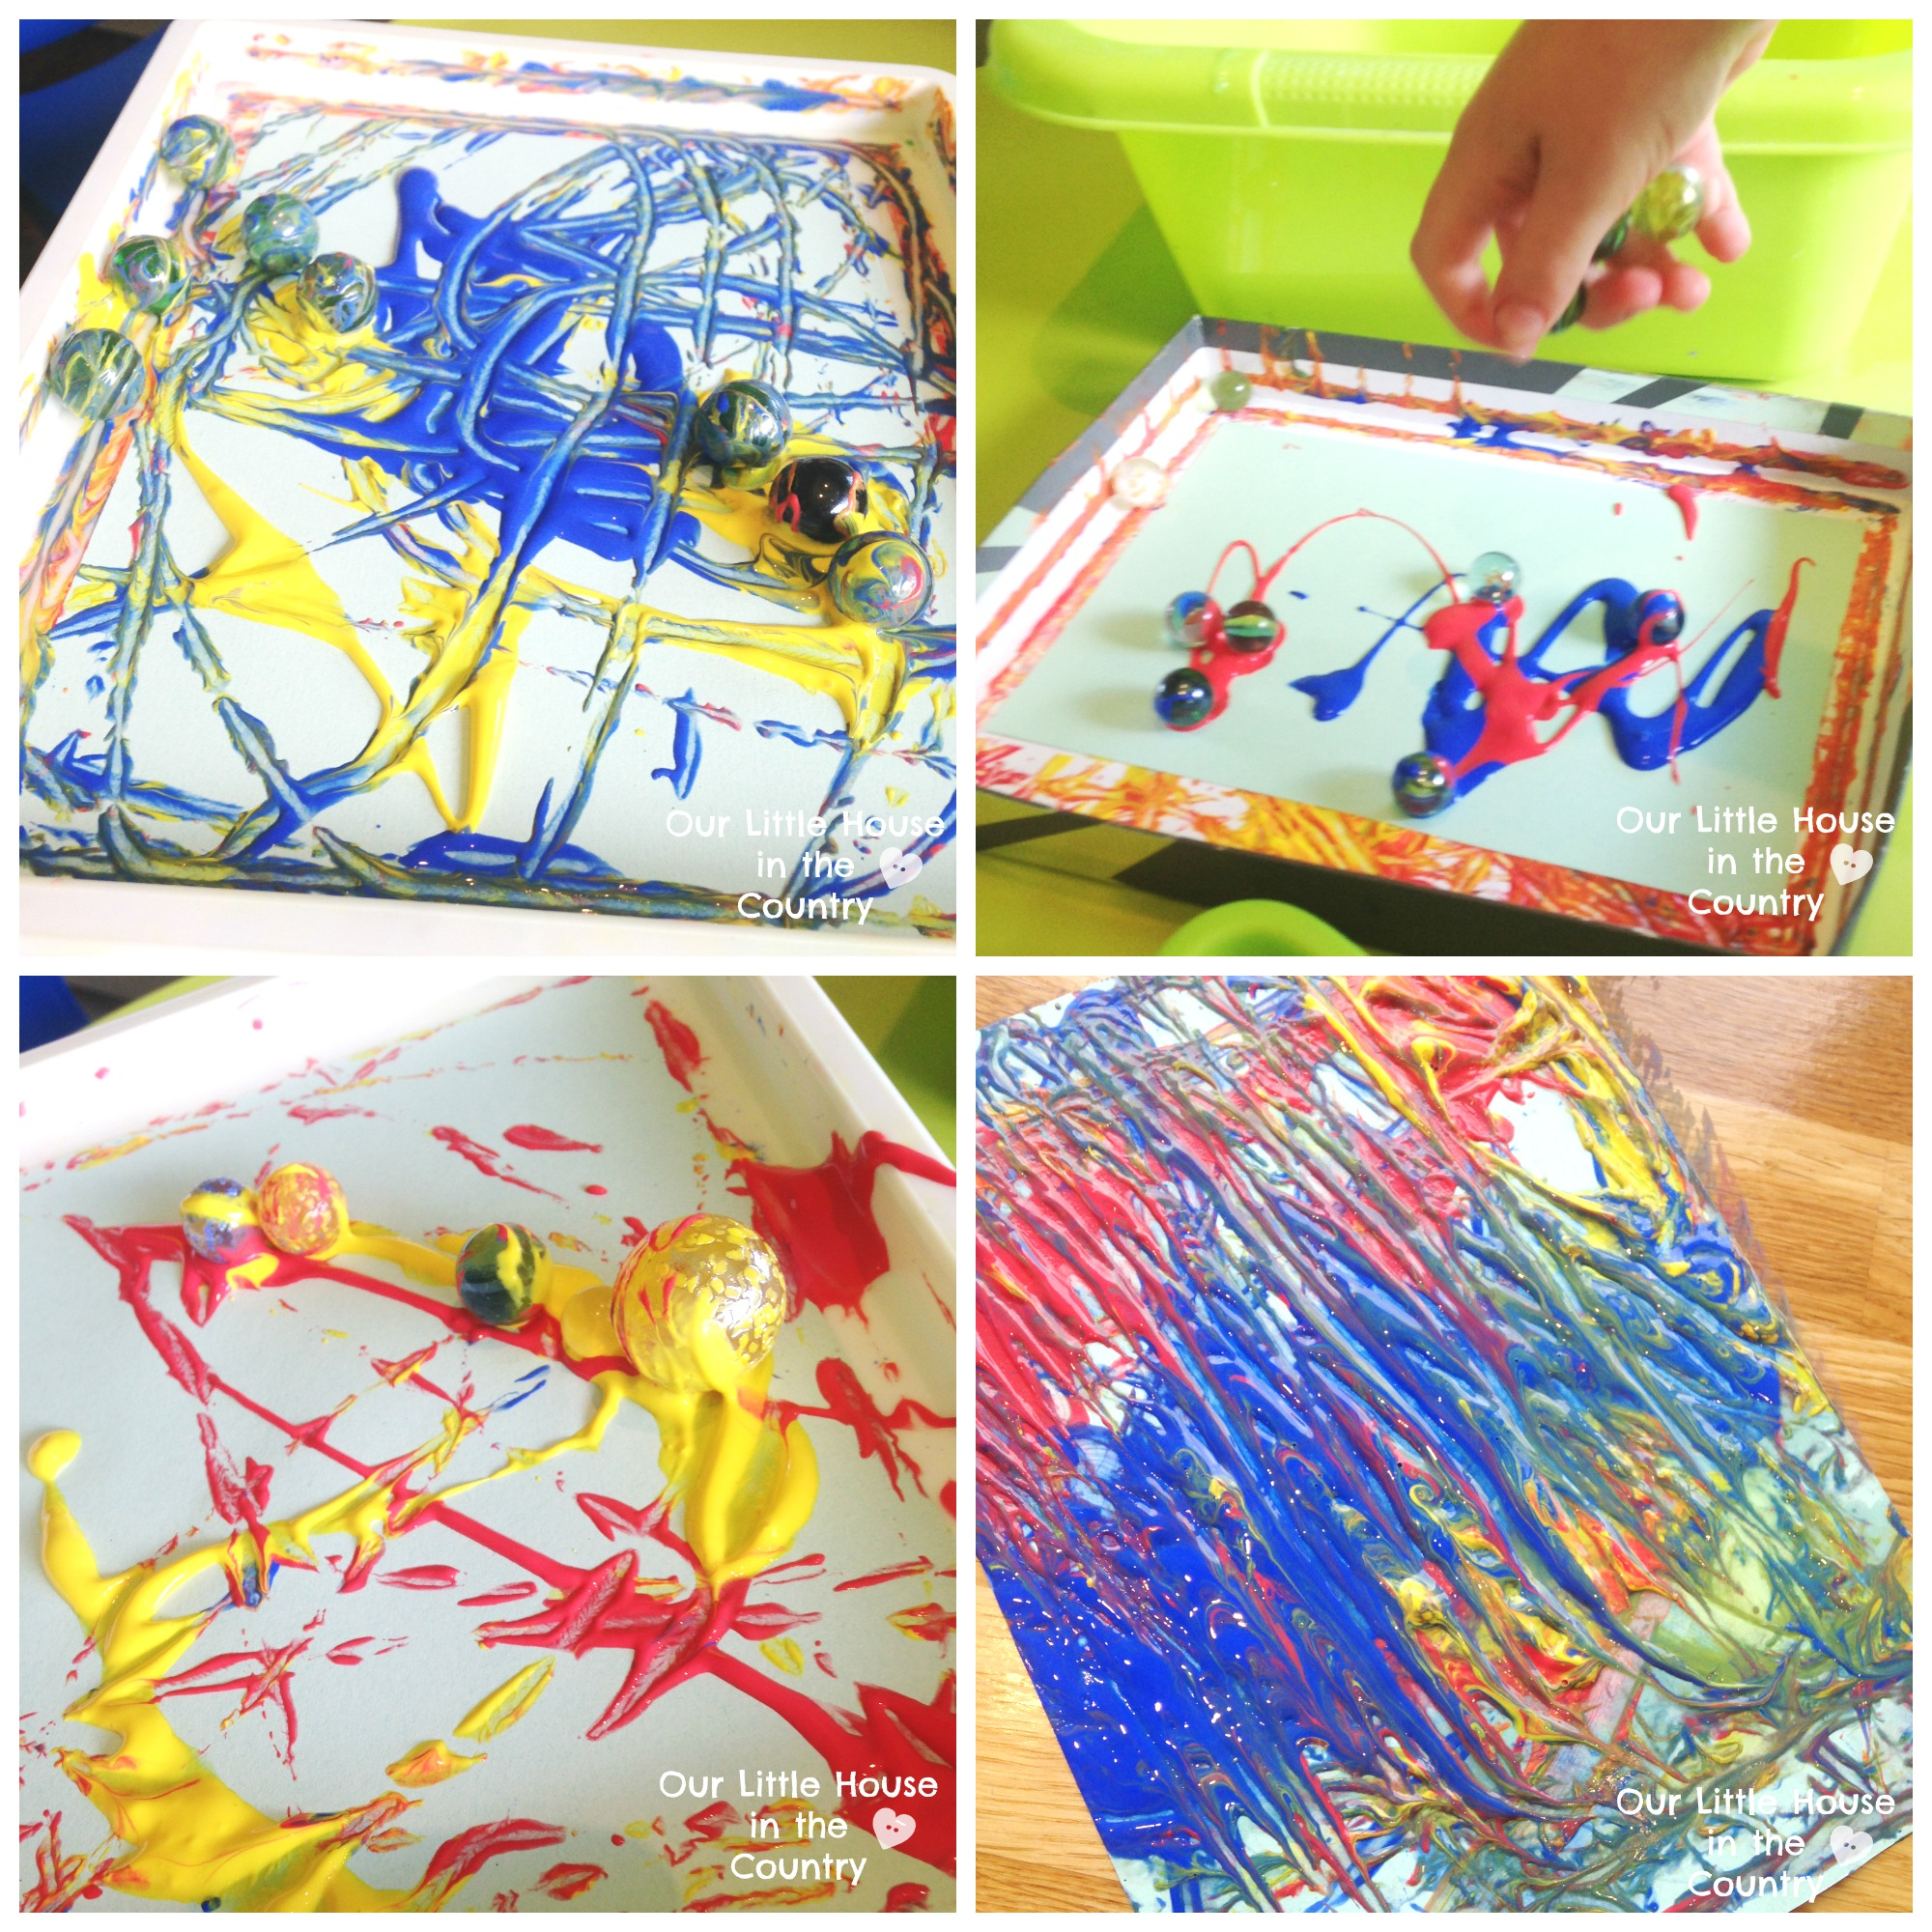 marble painting more rainy day messy art fun our little house marble painting messy art fun perfect for a rainyday our little house in